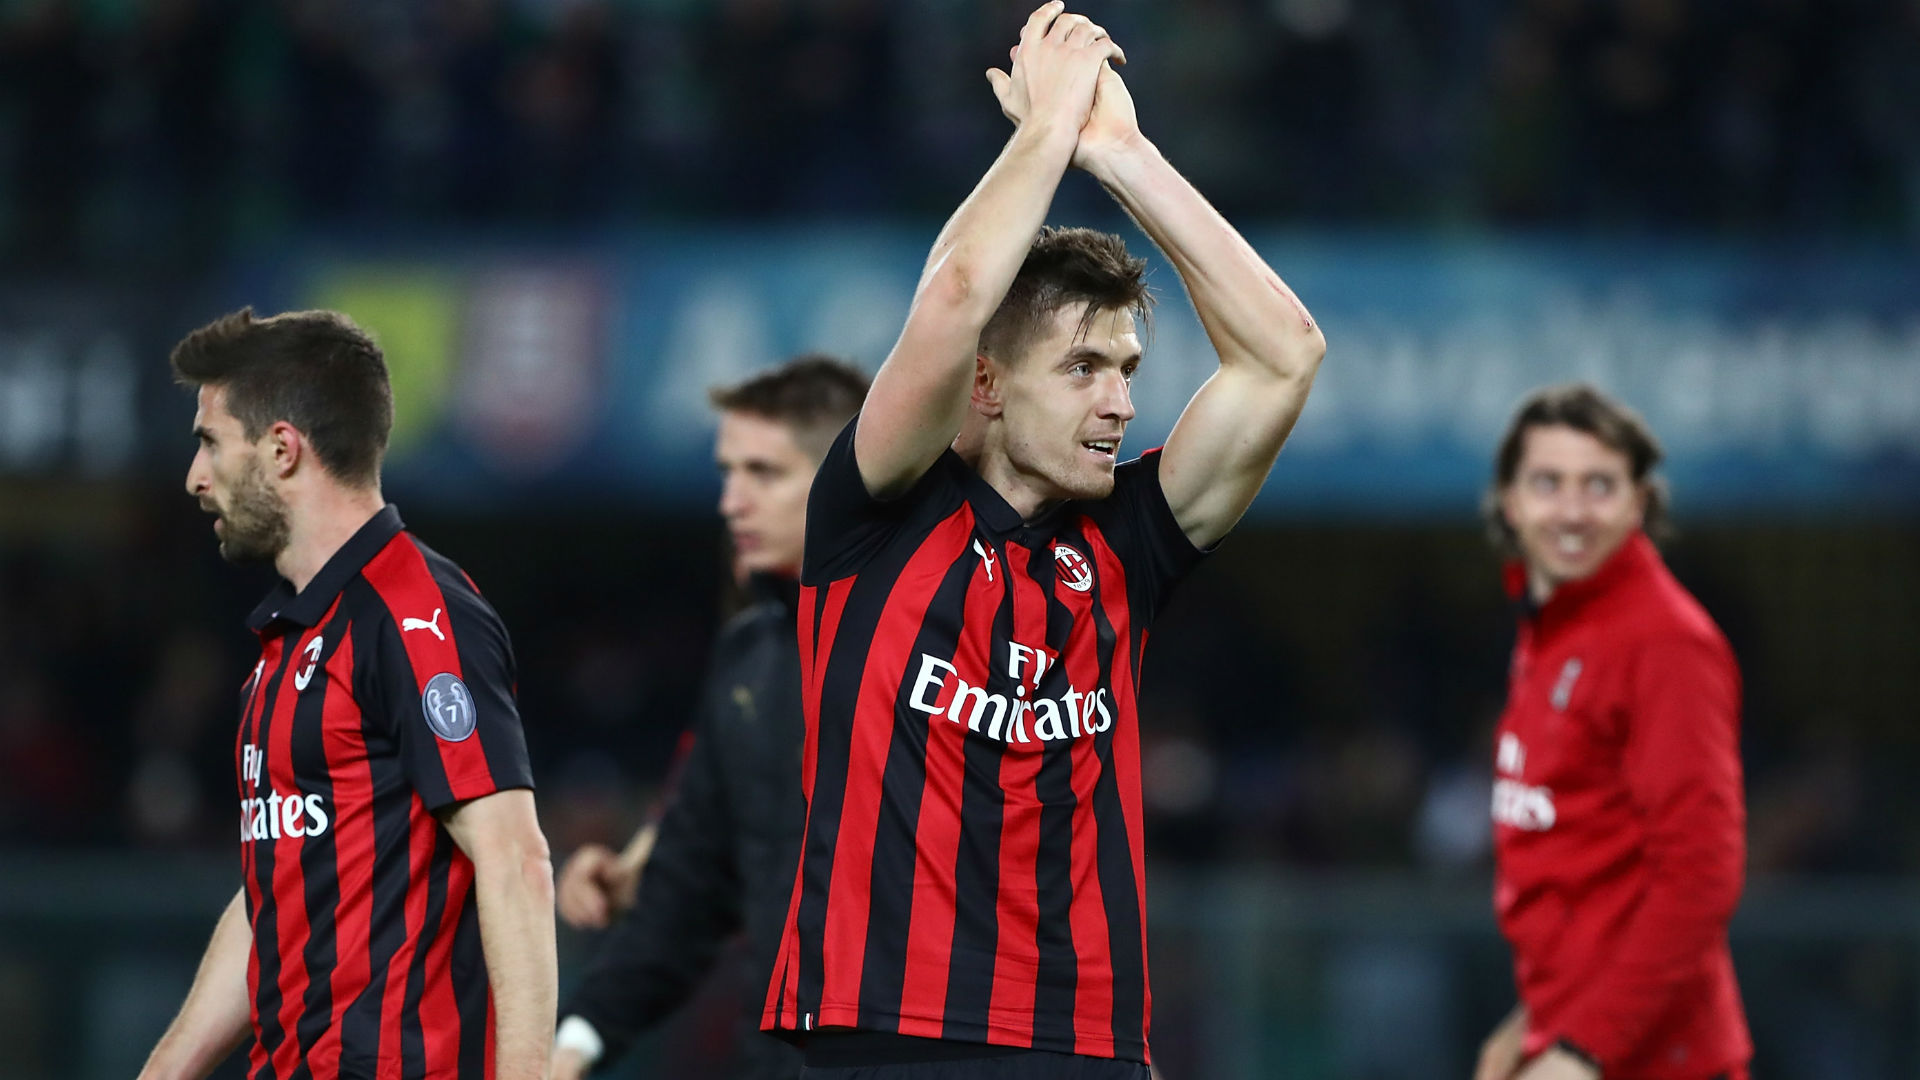 AC Milan's Serie A 2019-20 fixtures in full